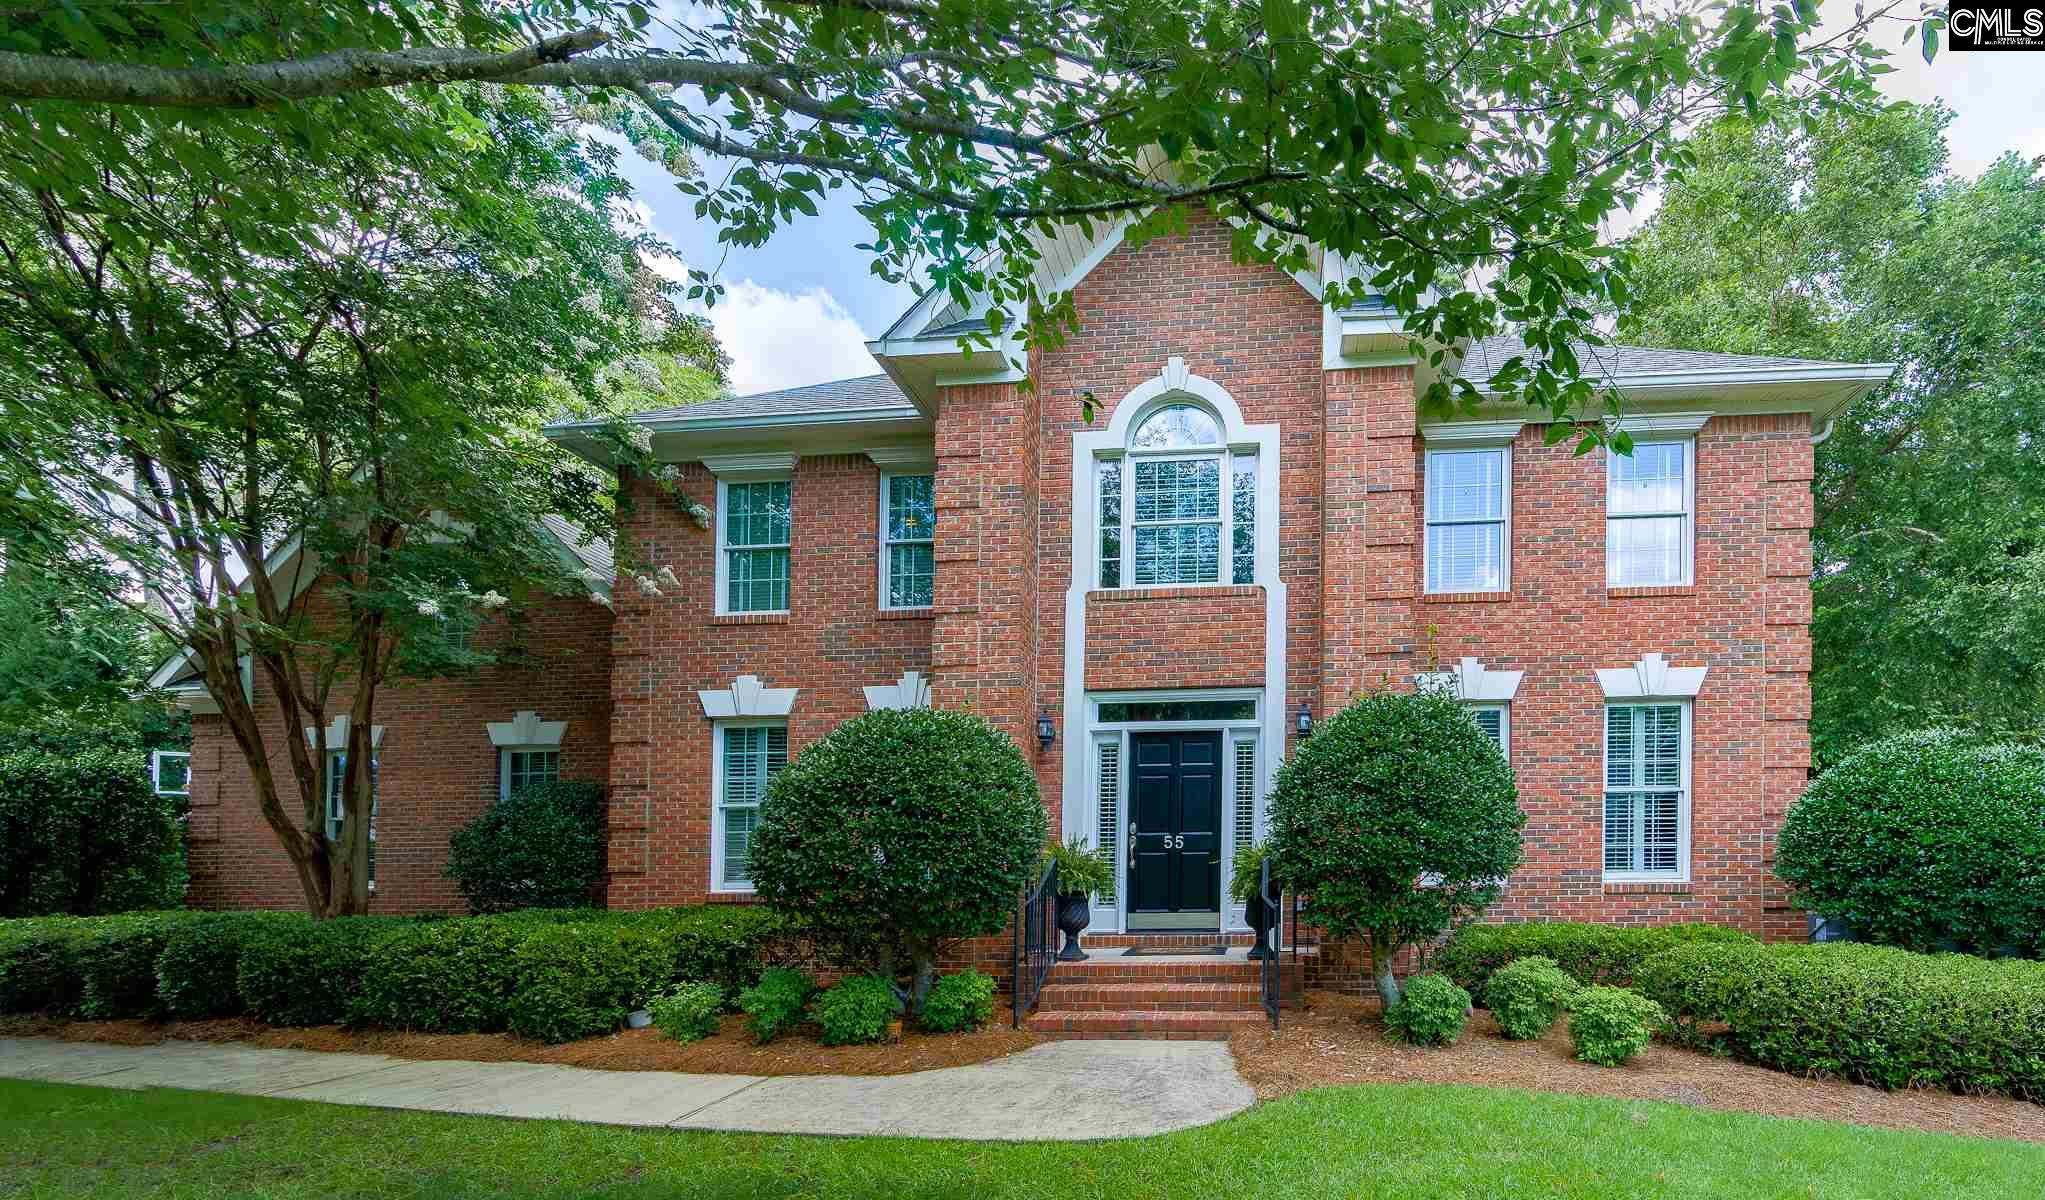 55 Somerton Columbia, SC 29209